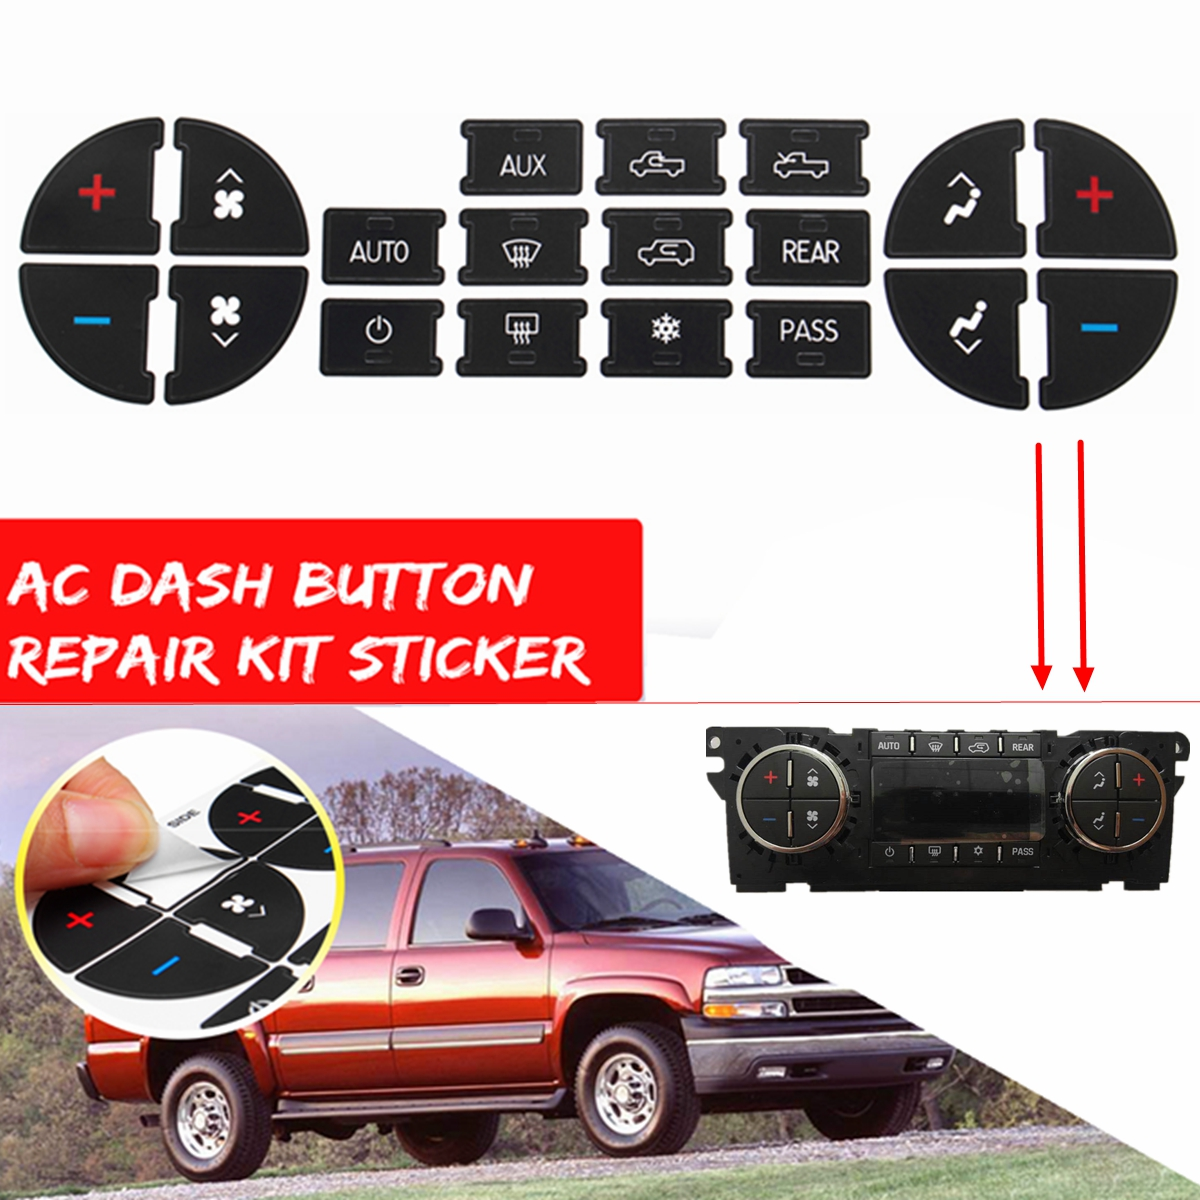 1X AC Dash Button Sticker Repair Kit Dash Replacement Decal Stickers Fits For GM